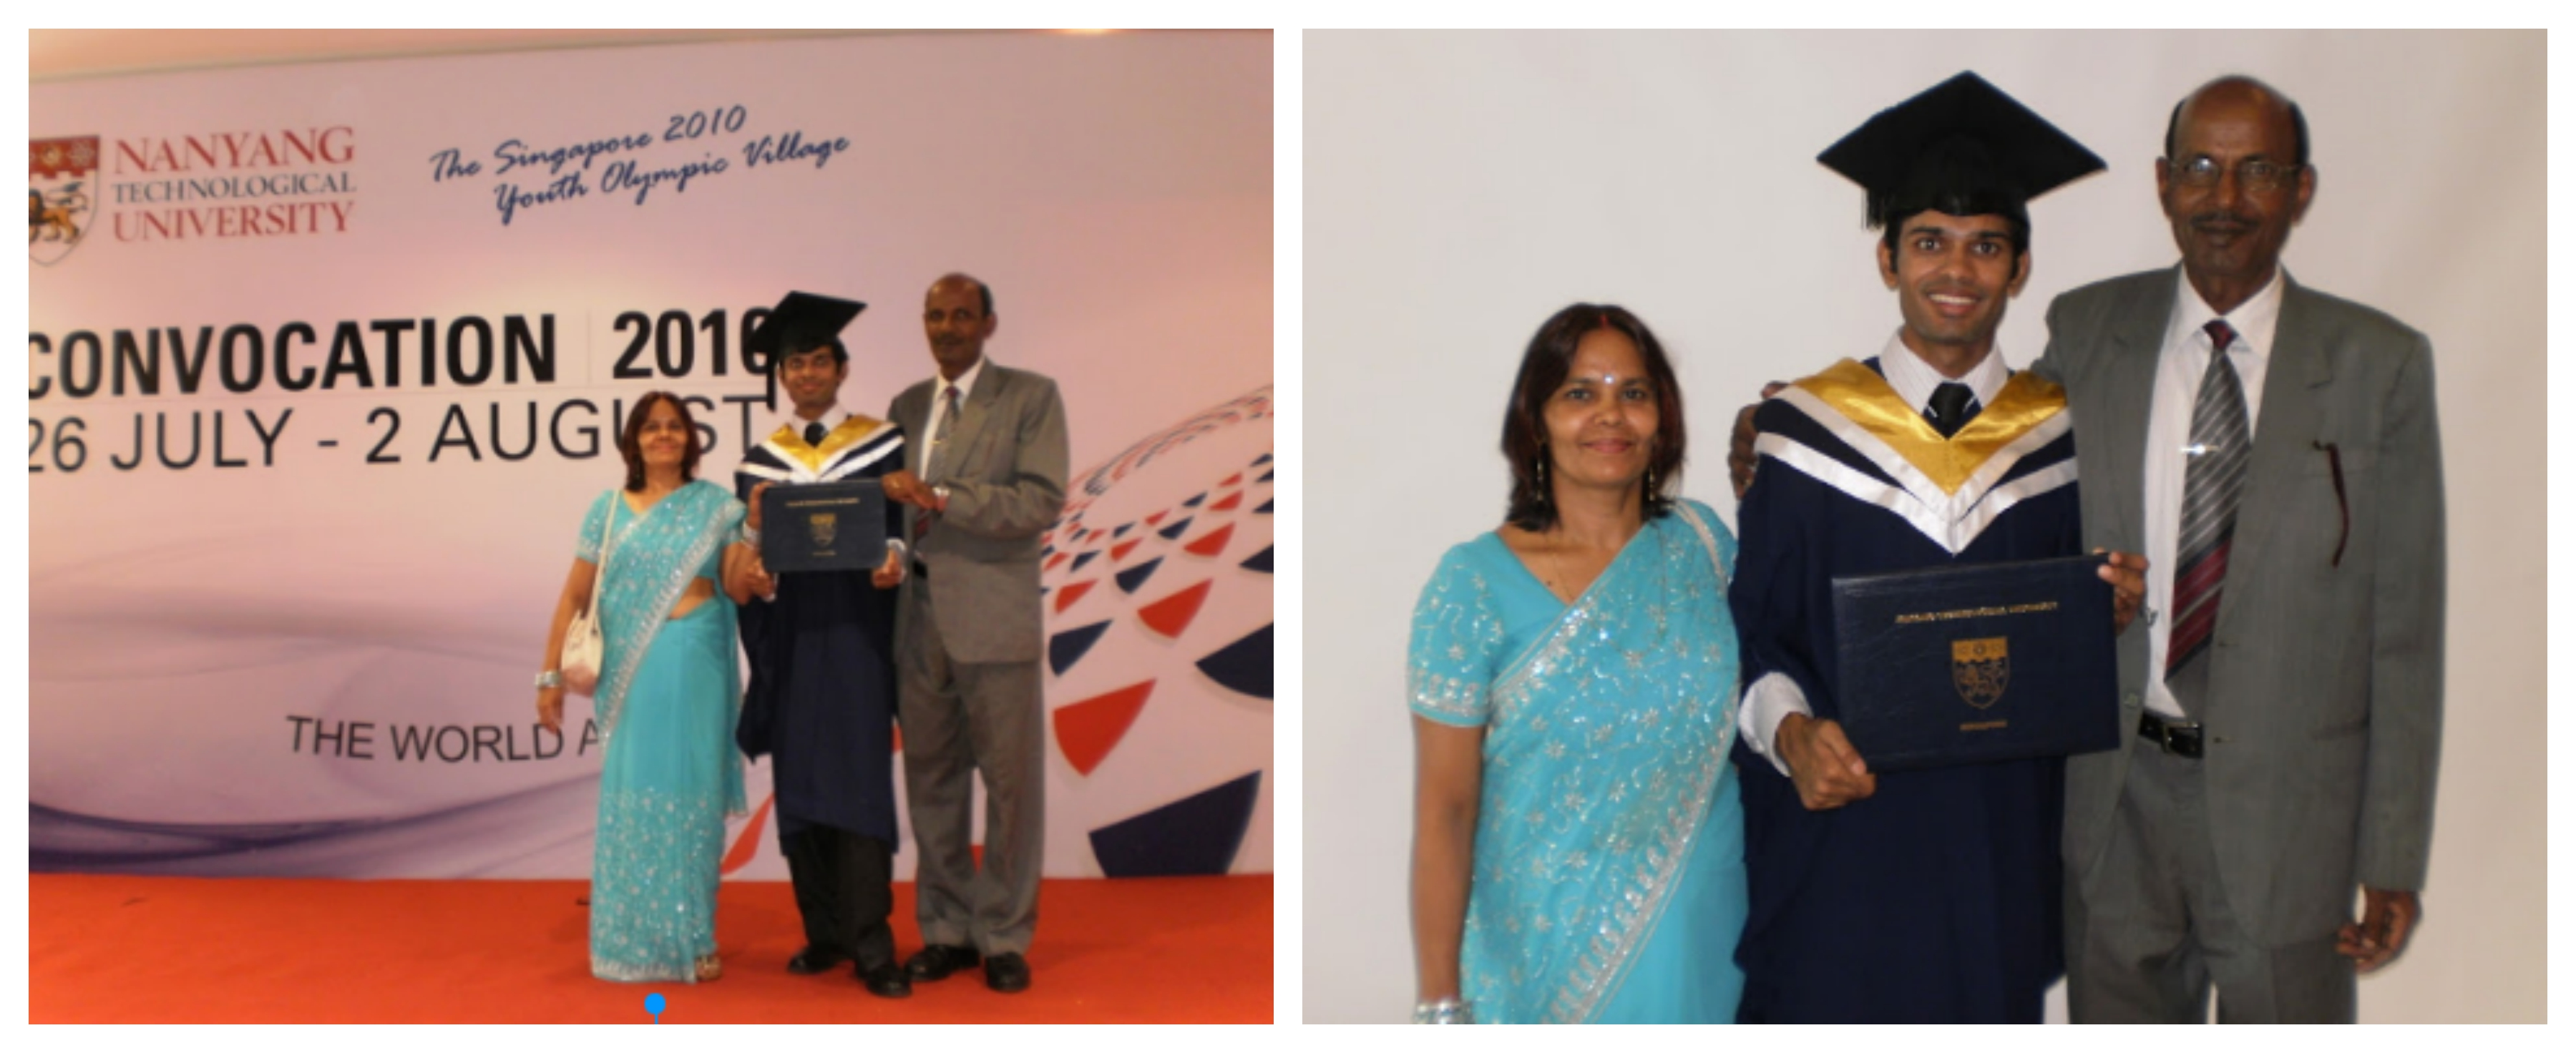 Turning Dreams to realities – Me graduating from NTU